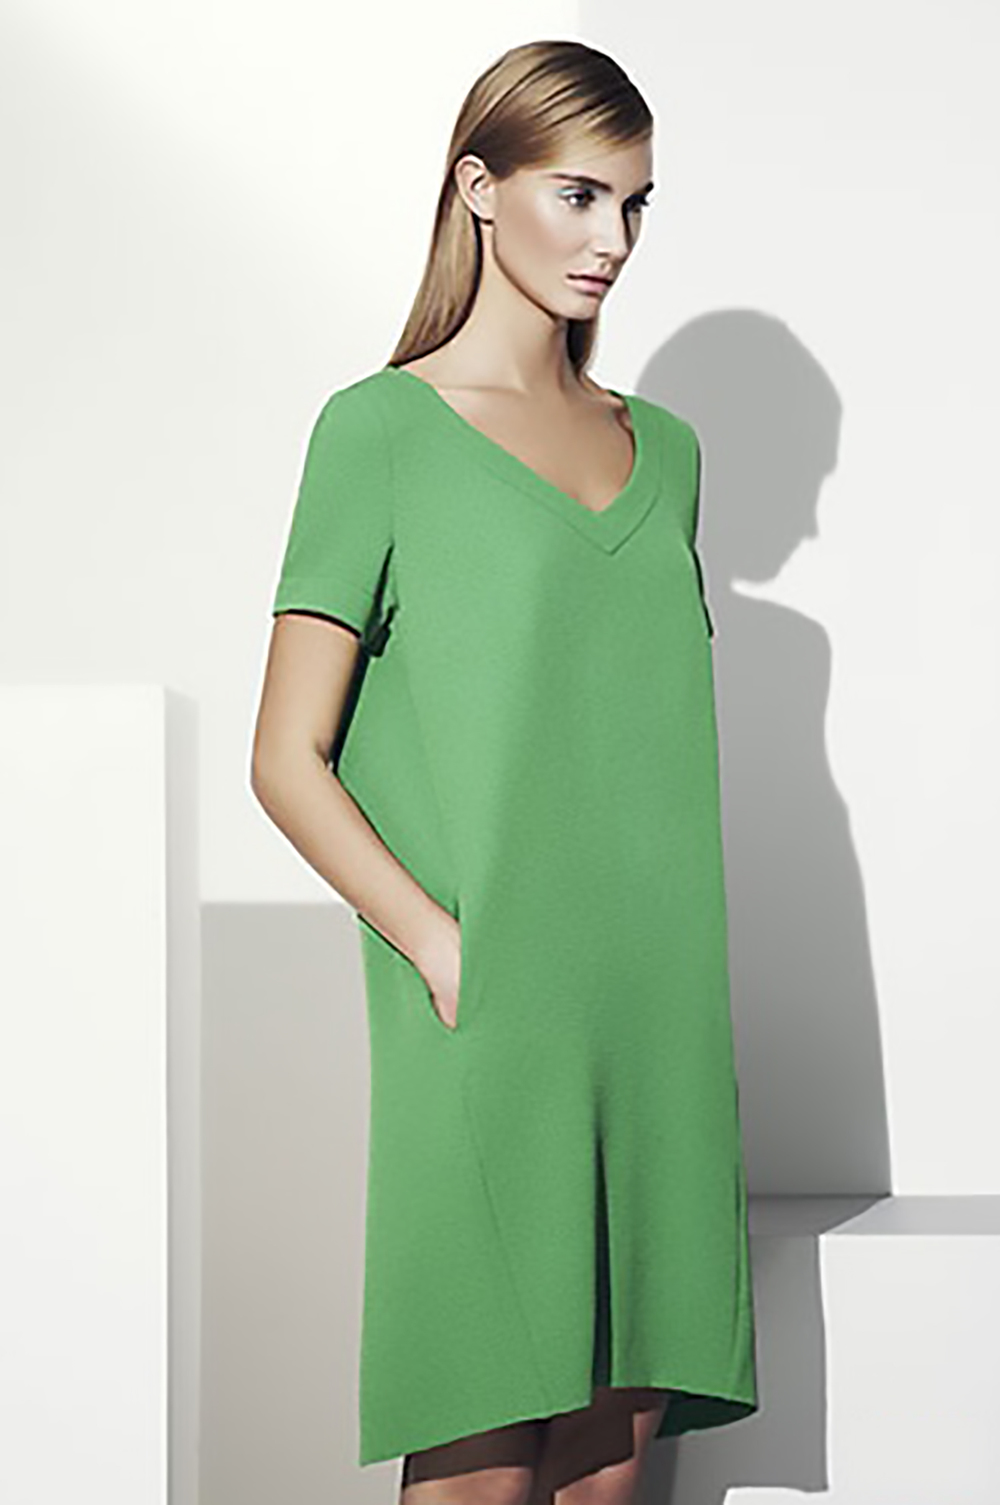 refinery 29 M&S spring catalog 2014_2 M&S 1500.jpg